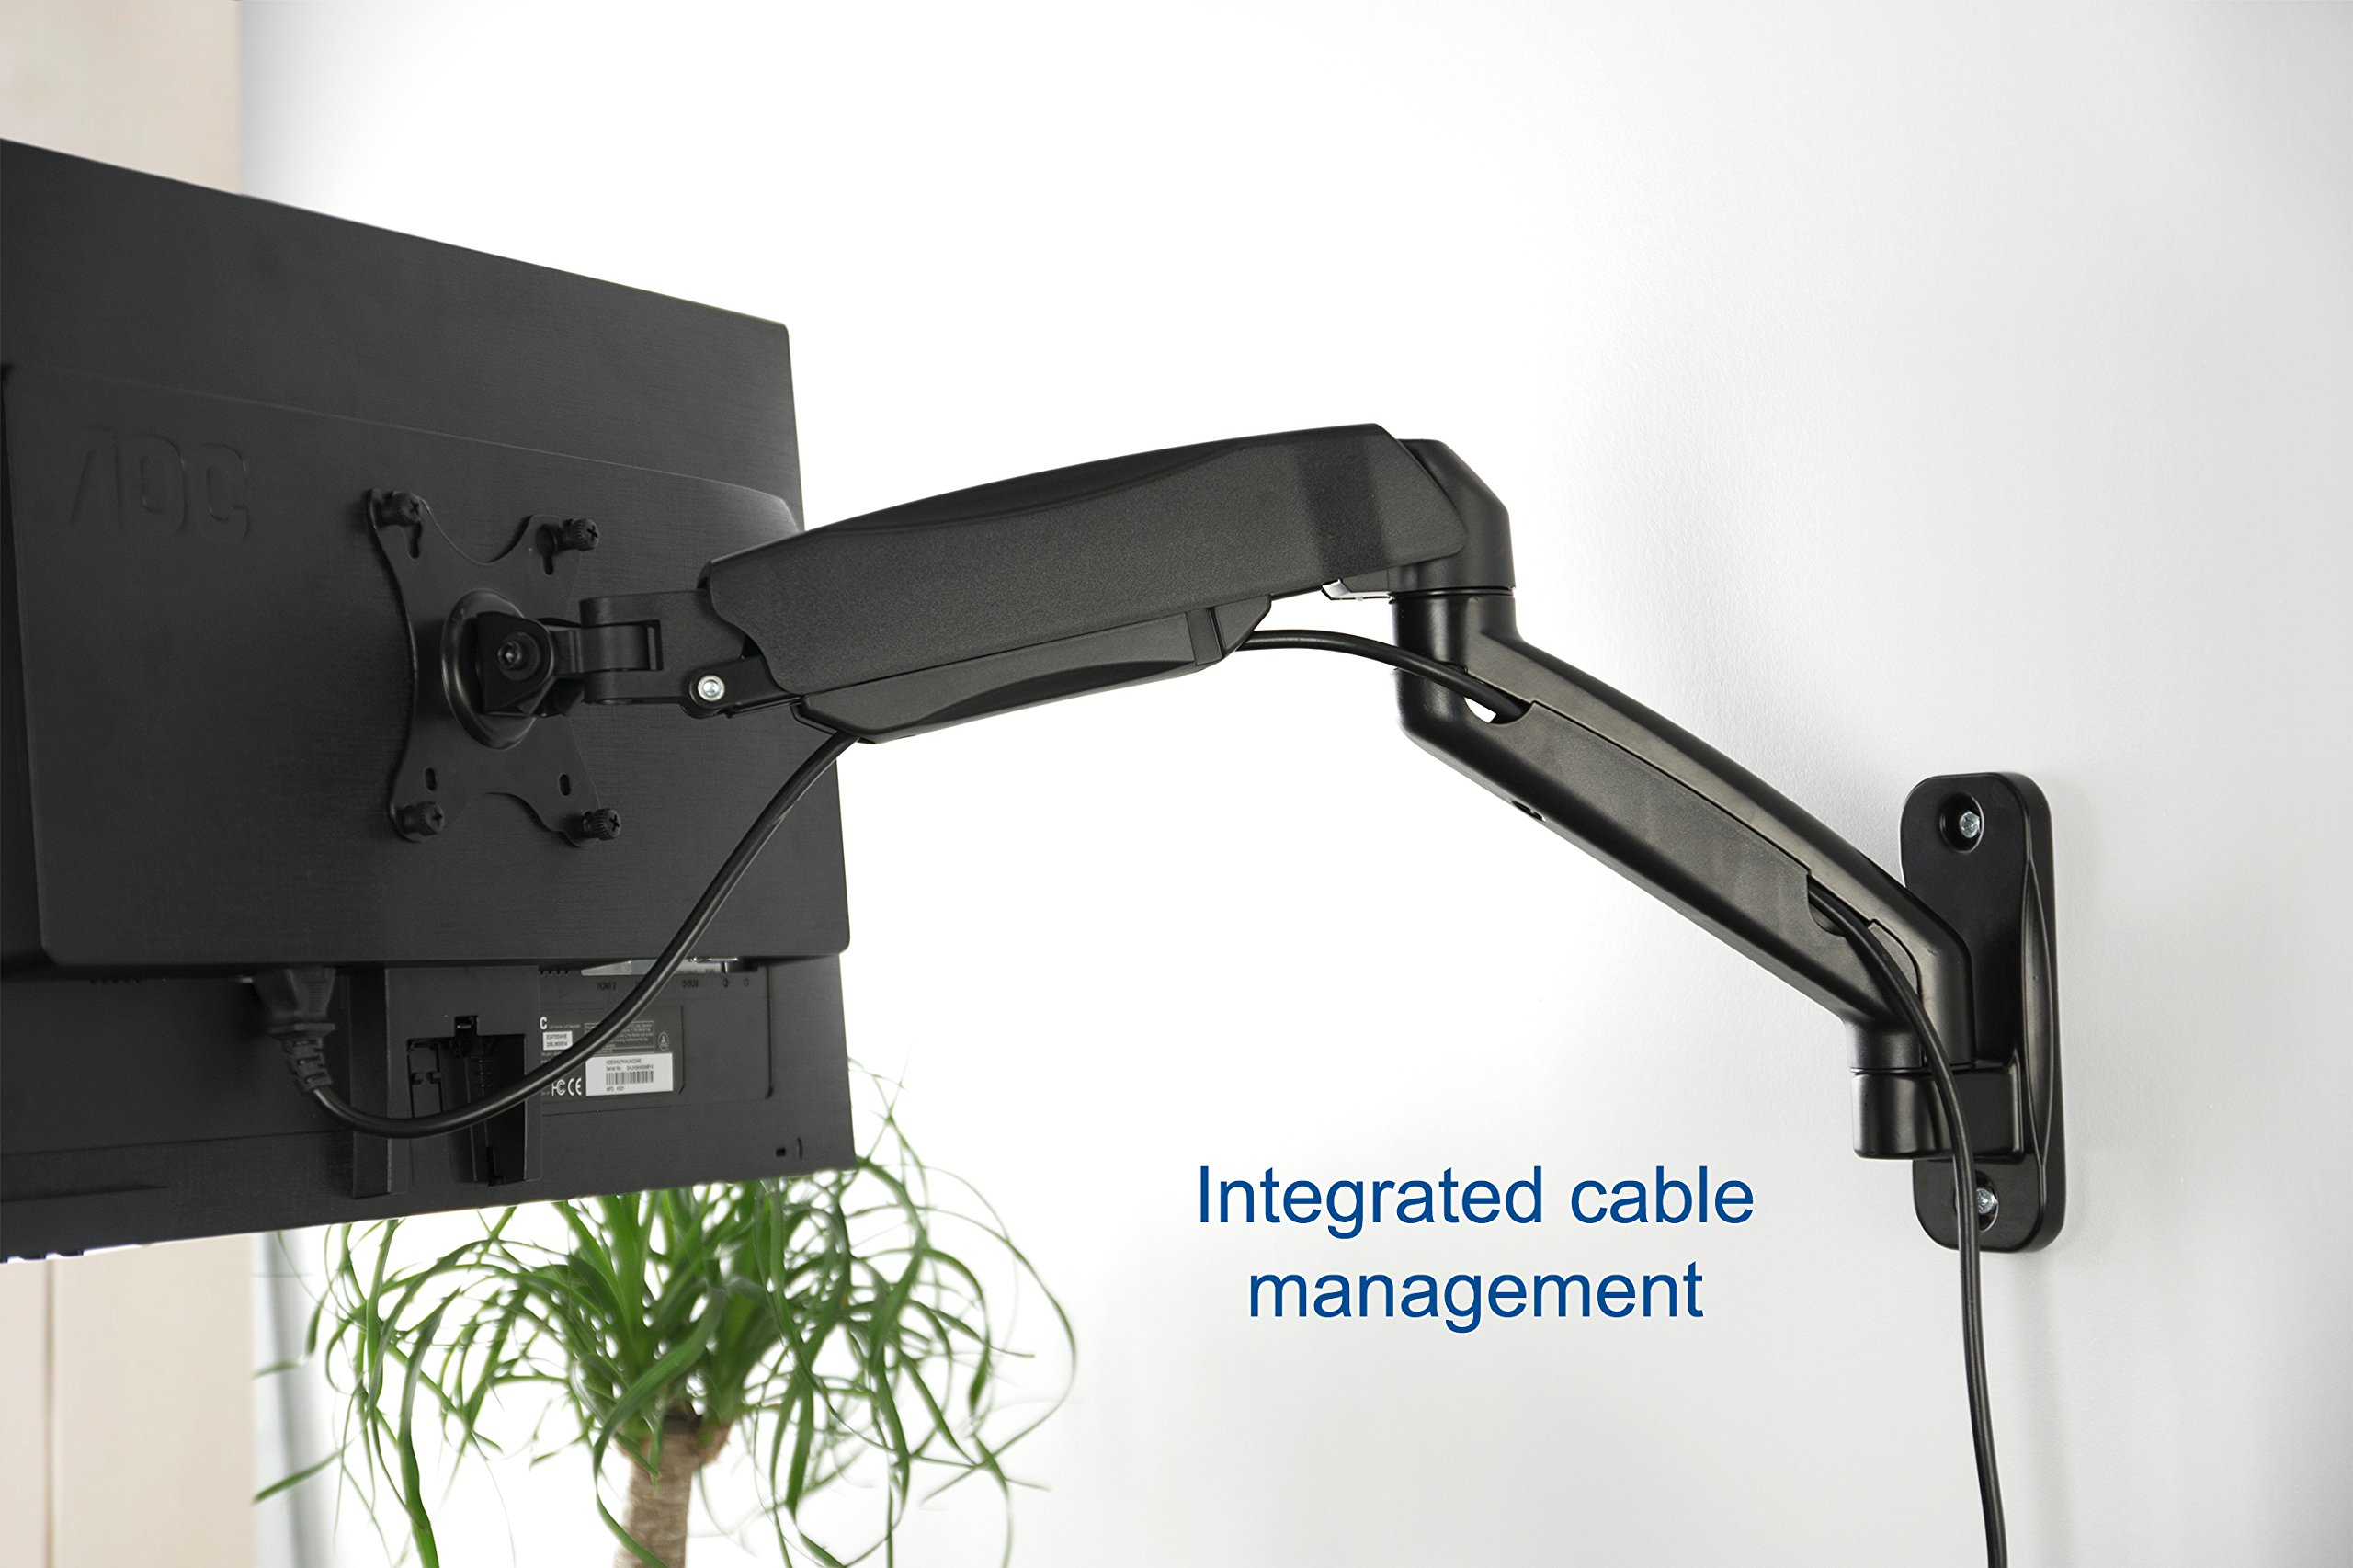 VIVO Black Height Adjustable Gas Spring Extended Arm Single Monitor Wall Mount Full Motion Articulating | fits 17'' to 27'' Screens (MOUNT-V001G) by VIVO (Image #5)